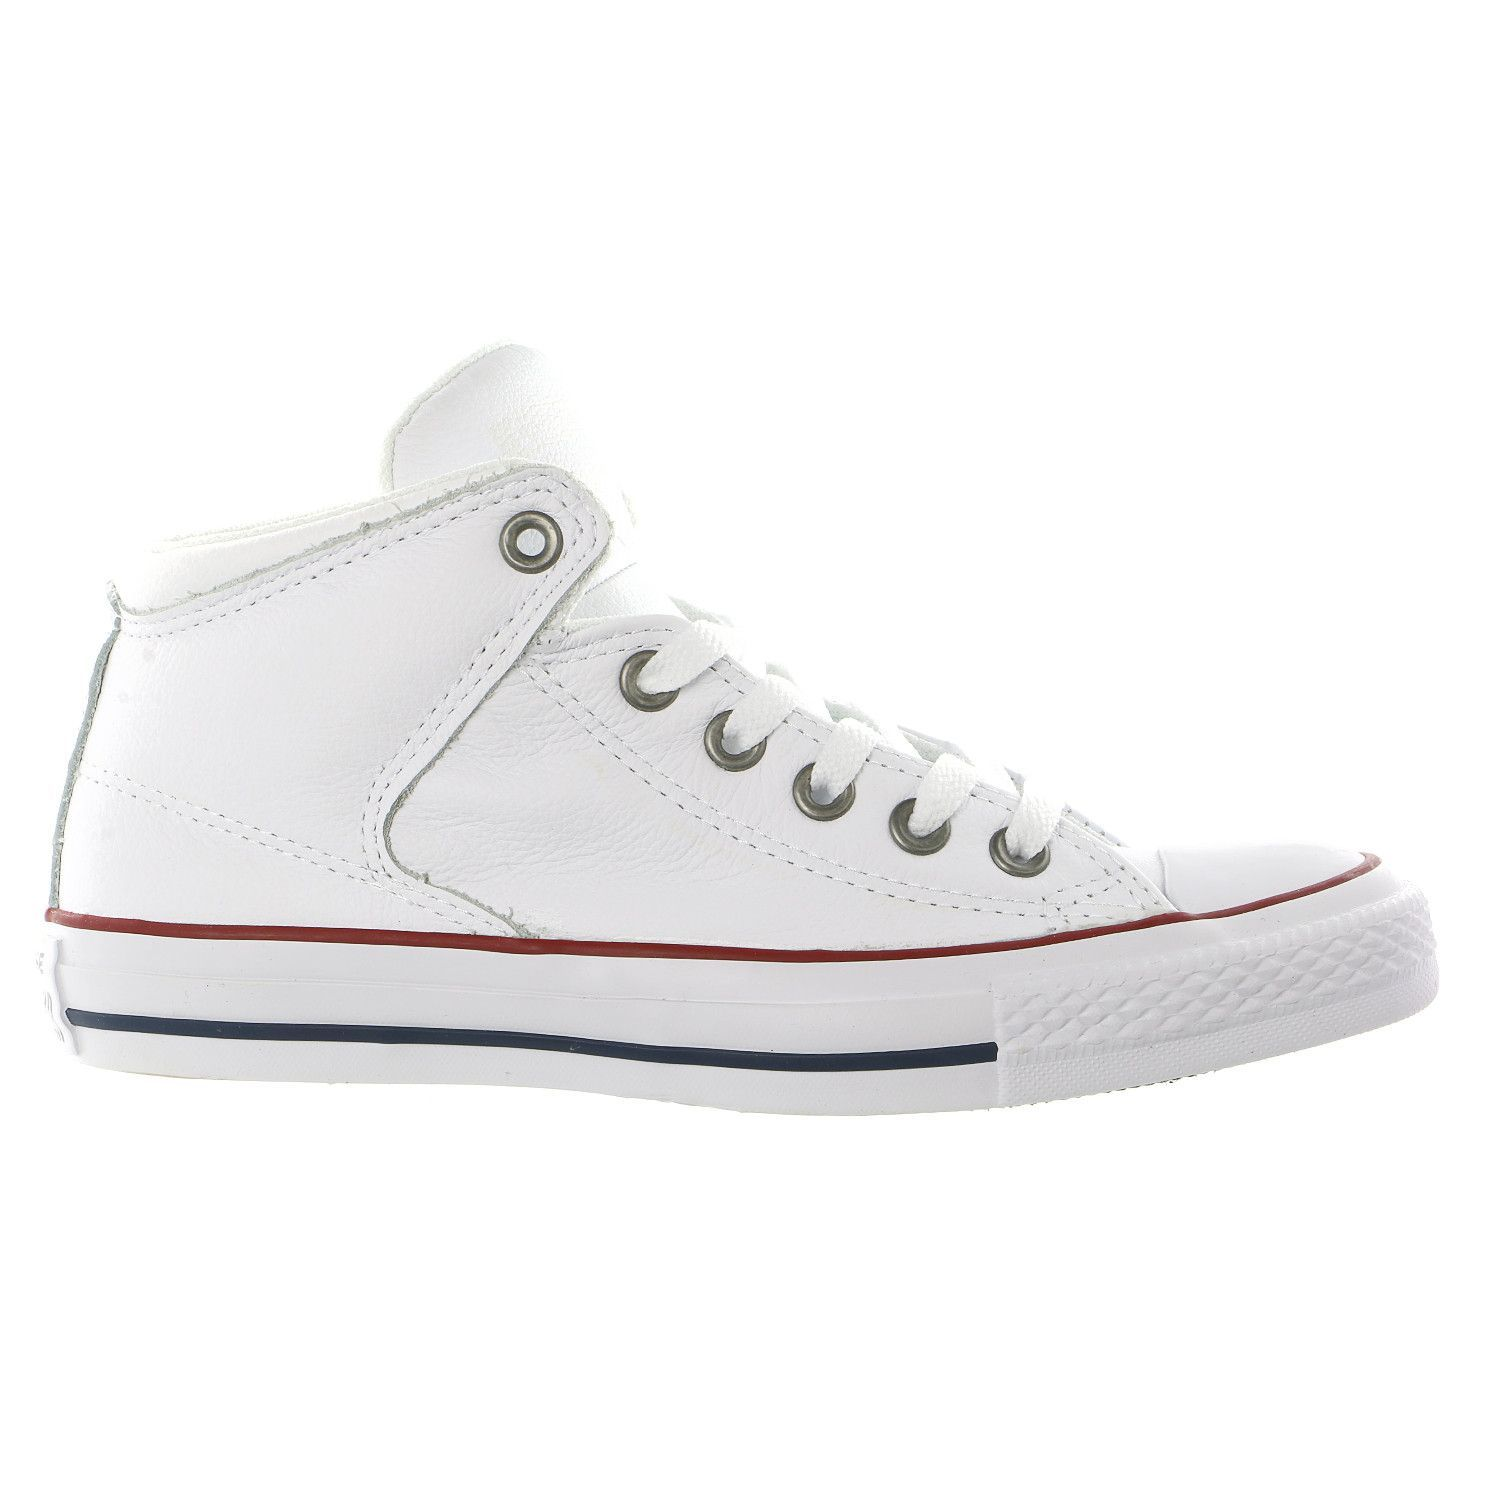 815ba6f1237 Converse Chuck Taylor All Star High Street HI Fashion Sneaker - Mens ...